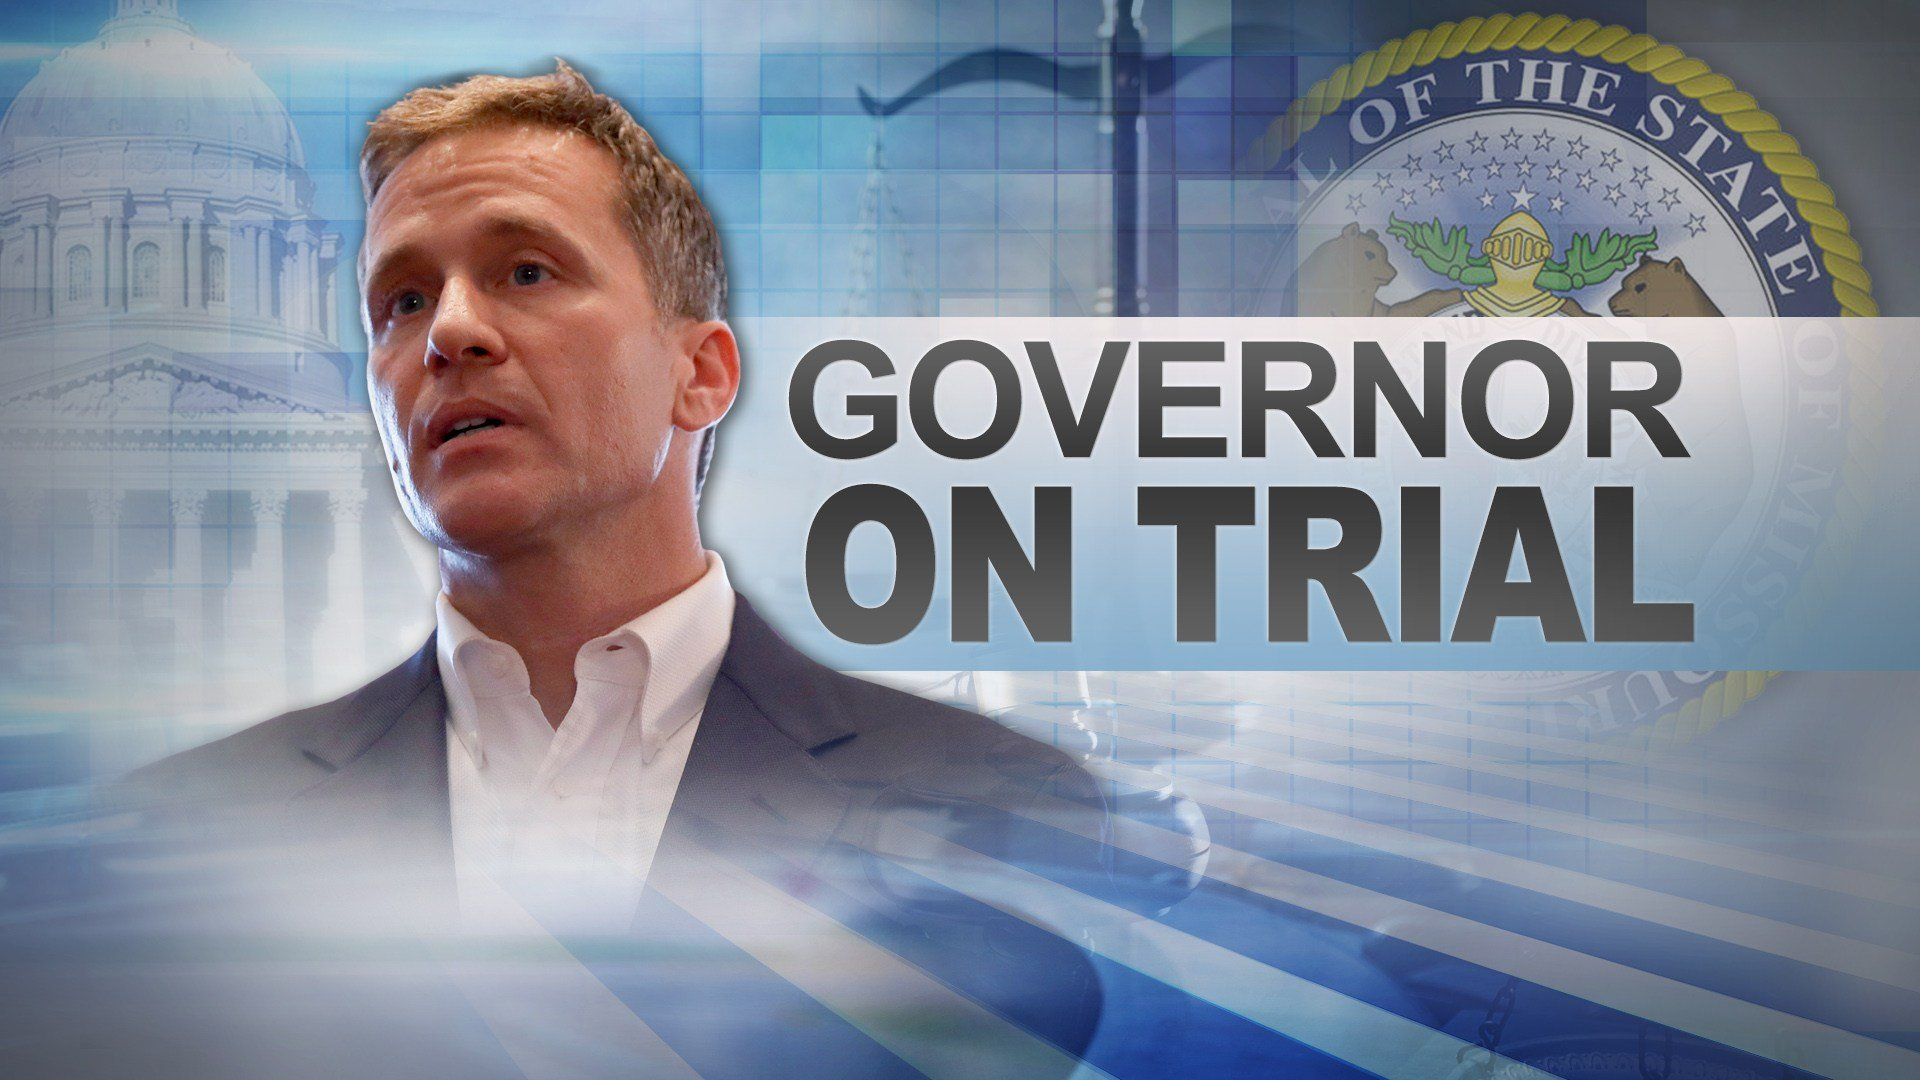 Jury selection in the felony case against the 44-year-old Republican is expected to start Thursday and last at least two days, and testimony is scheduled to begin Monday. (KCTV5)